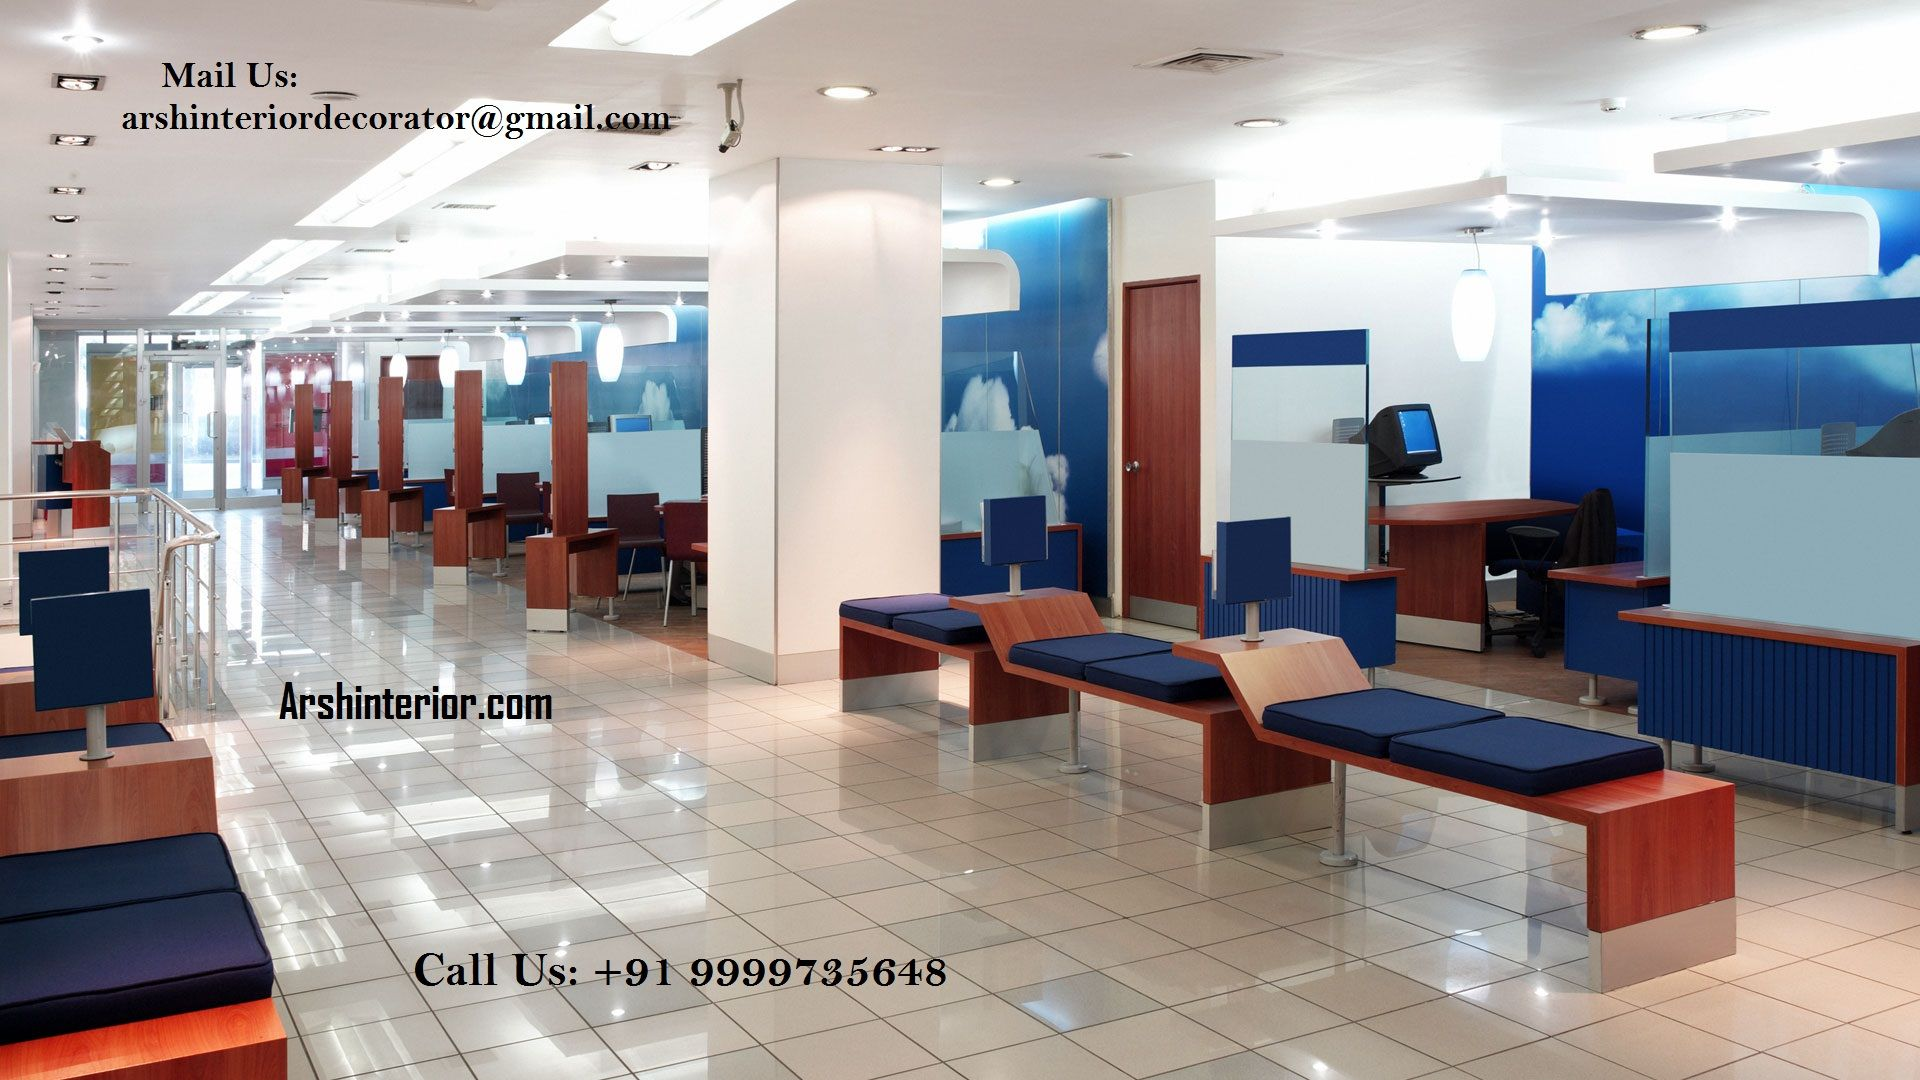 Home interior designers in chennai in arsh interior we give our clients the right impression with